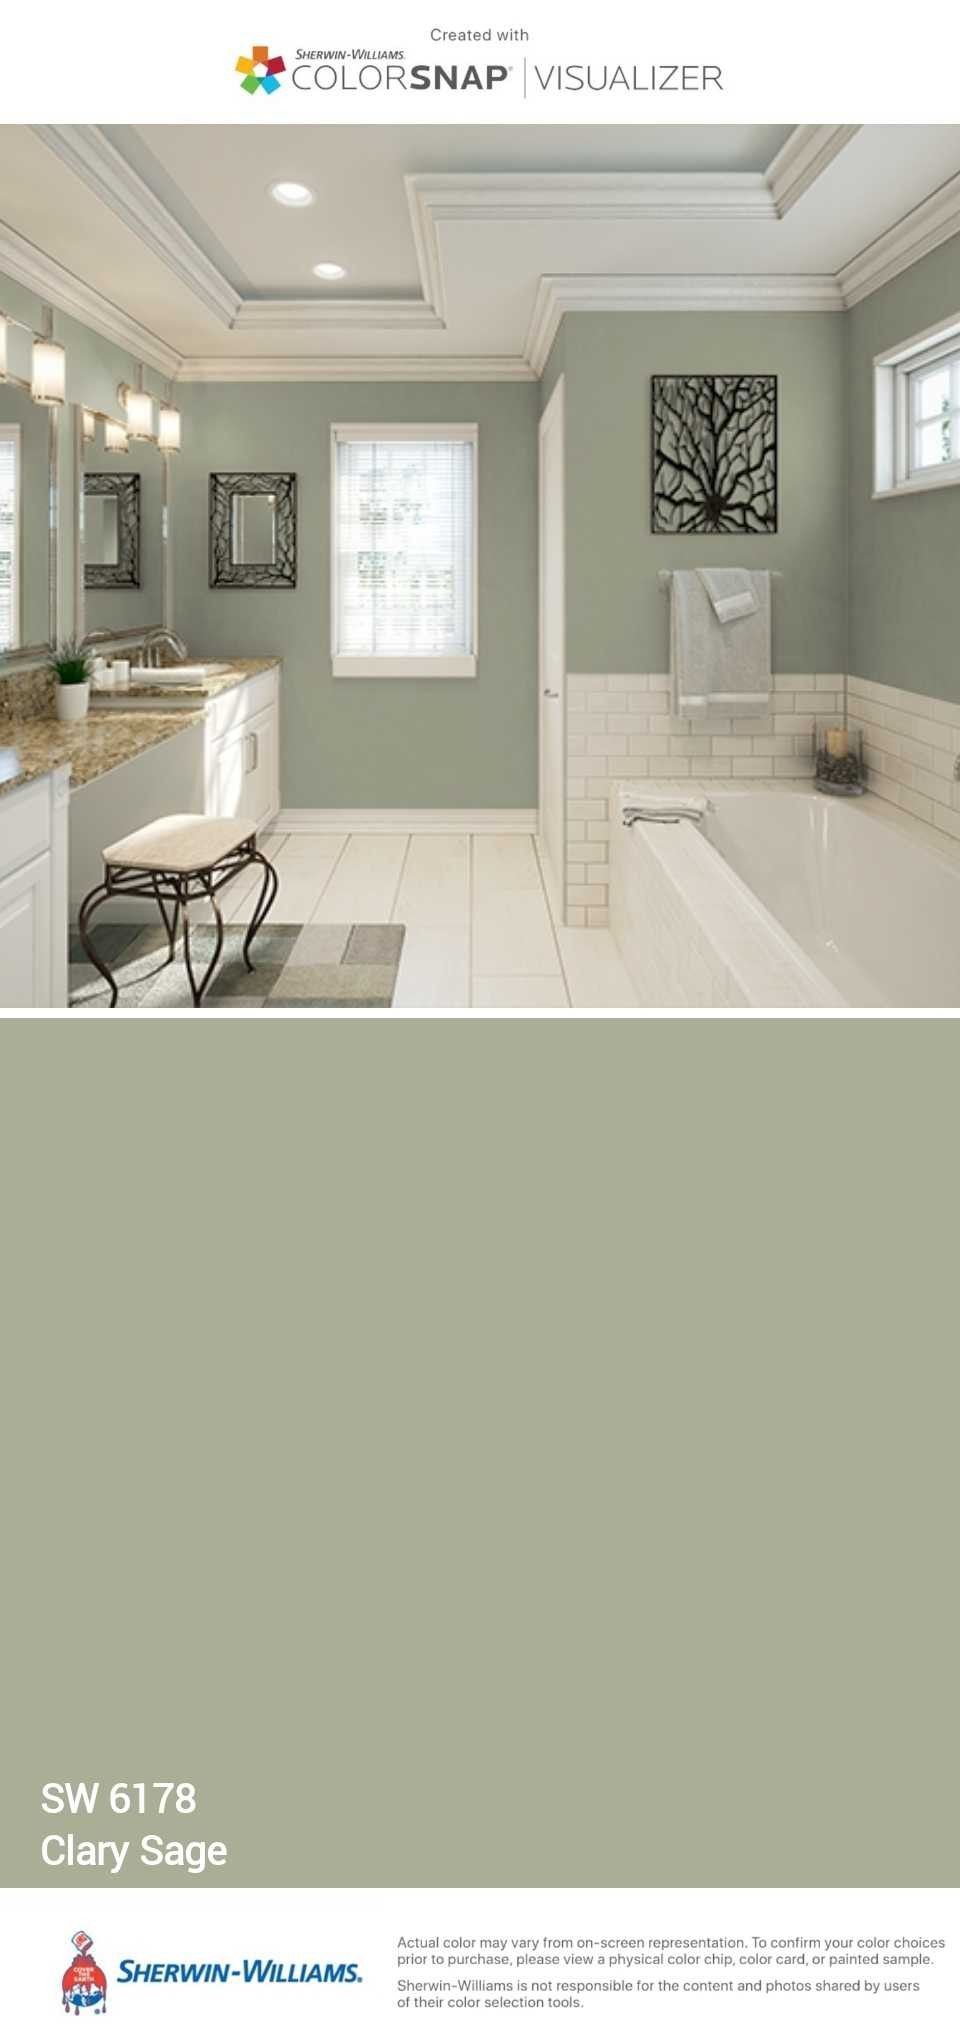 Clary Sage This Is Pretty Much The Exact Color In My Master Bathroom Looks Darker On My Walls Tho Small Bathroom Colors Paint Colors For Home Home Remodeling